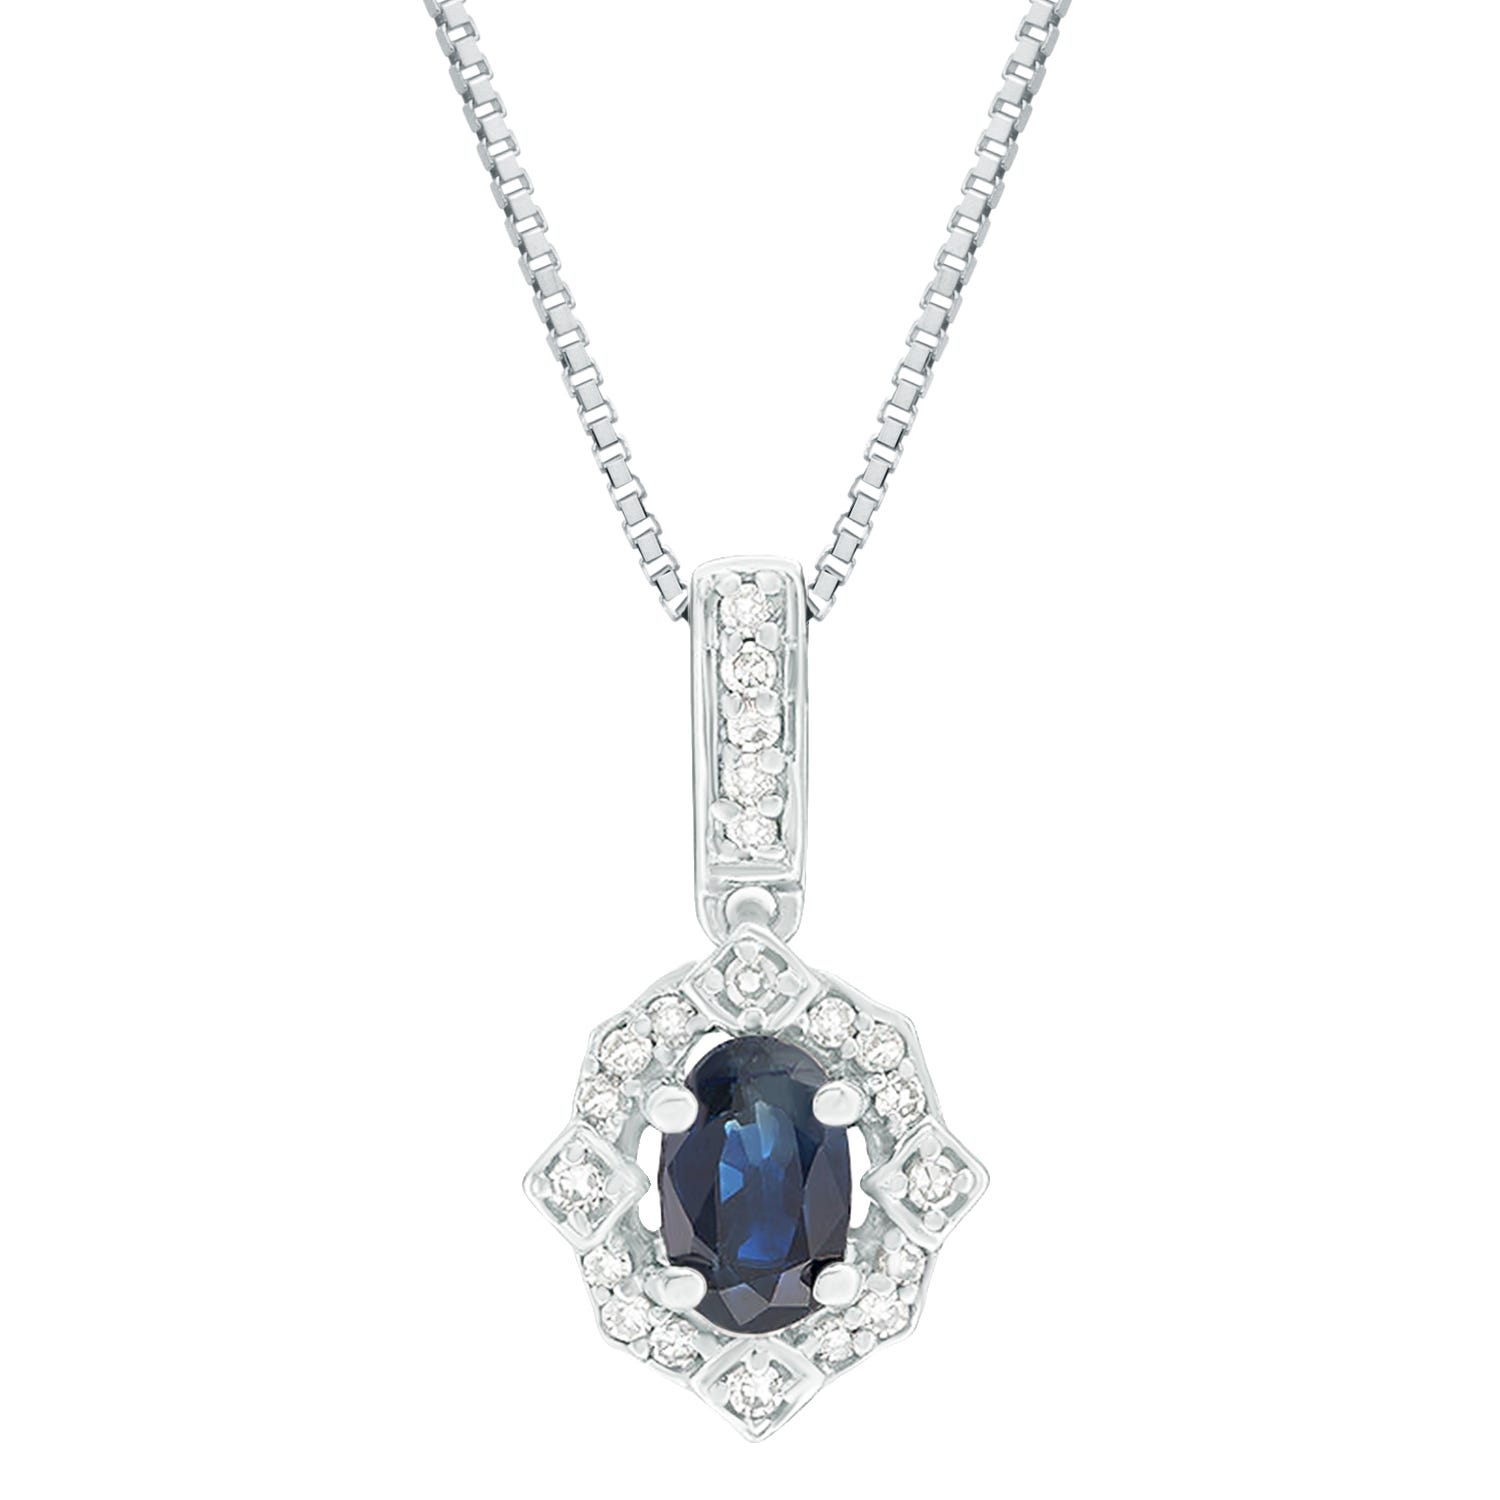 Oval Sapphire and Diamond Pendant in 10k White Gold